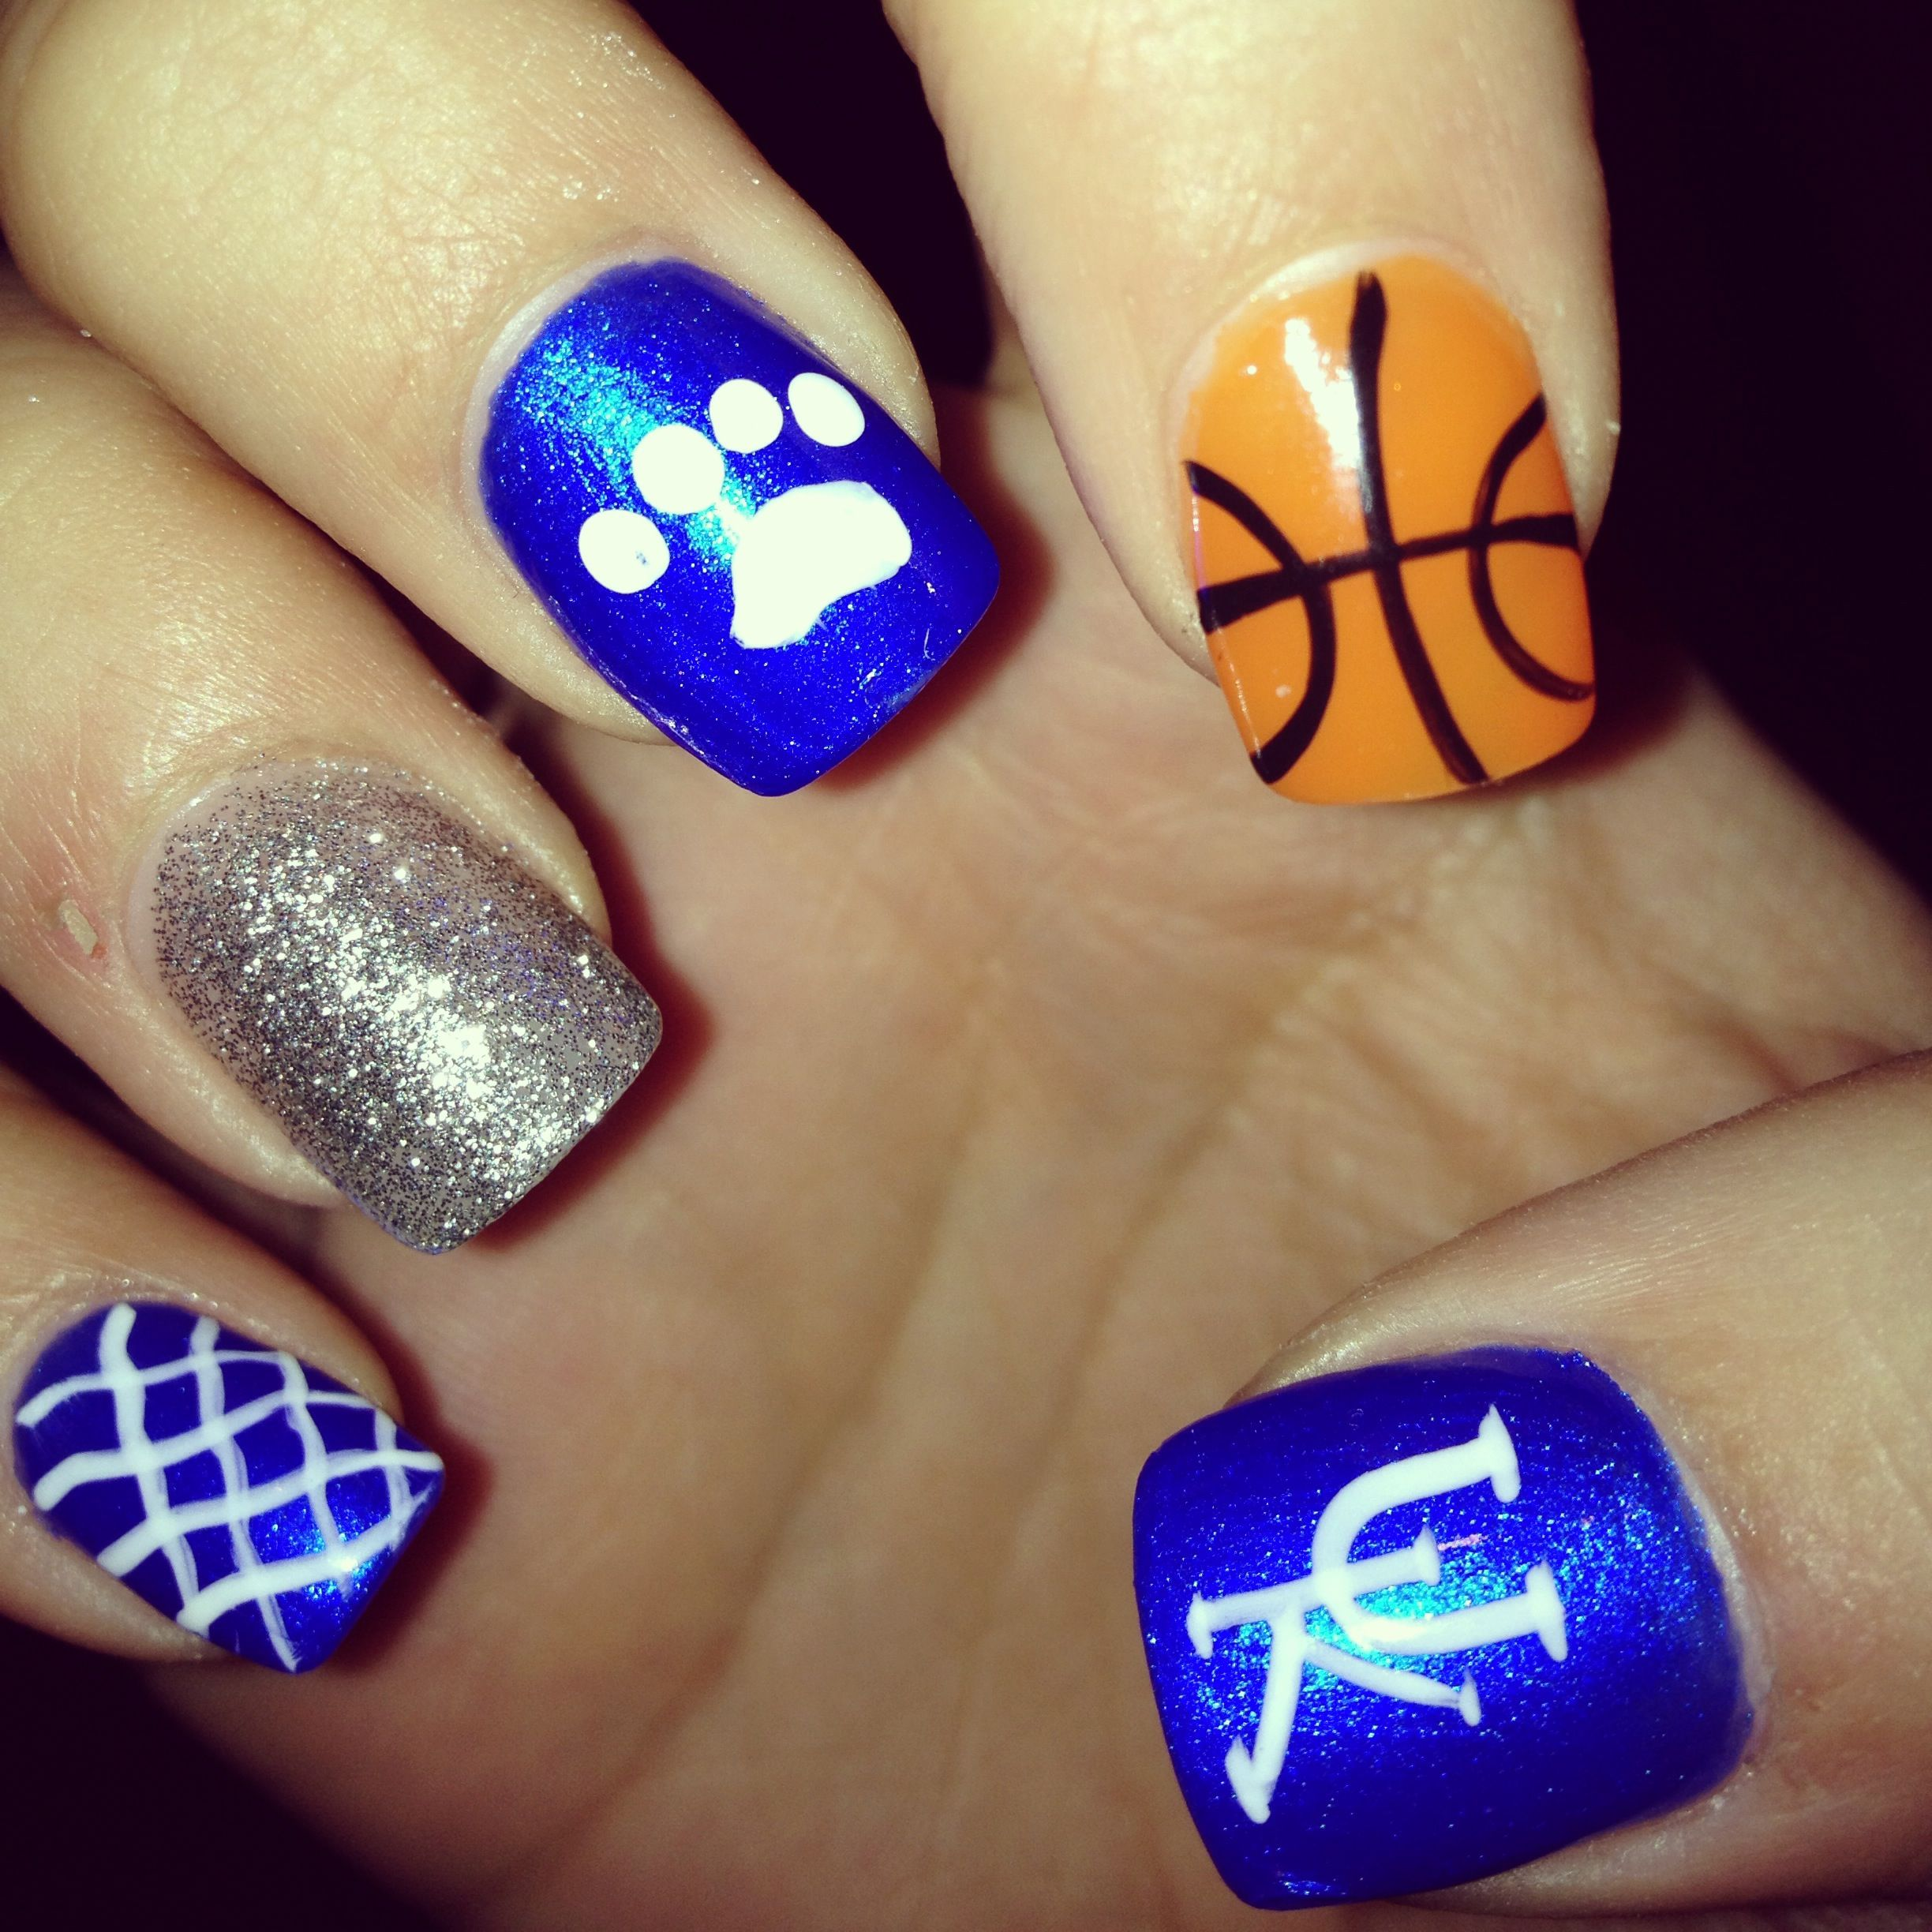 University of Kentucky Nail Art | Nails | Pinterest | Kentucky ...